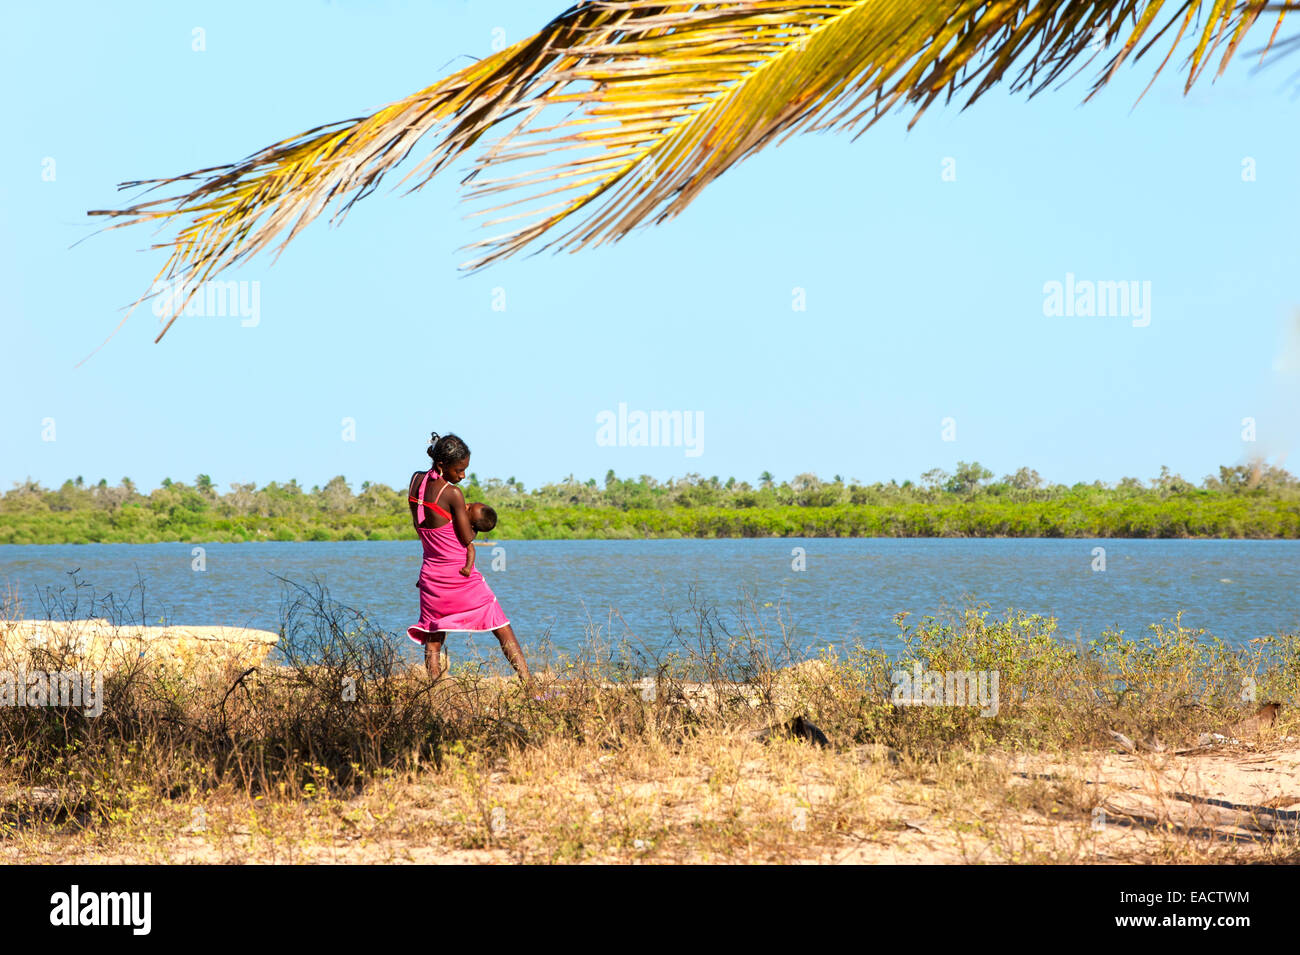 Malagasy Woman with her baby along the Morondava River, Toliara province, Madagascar - Stock Image